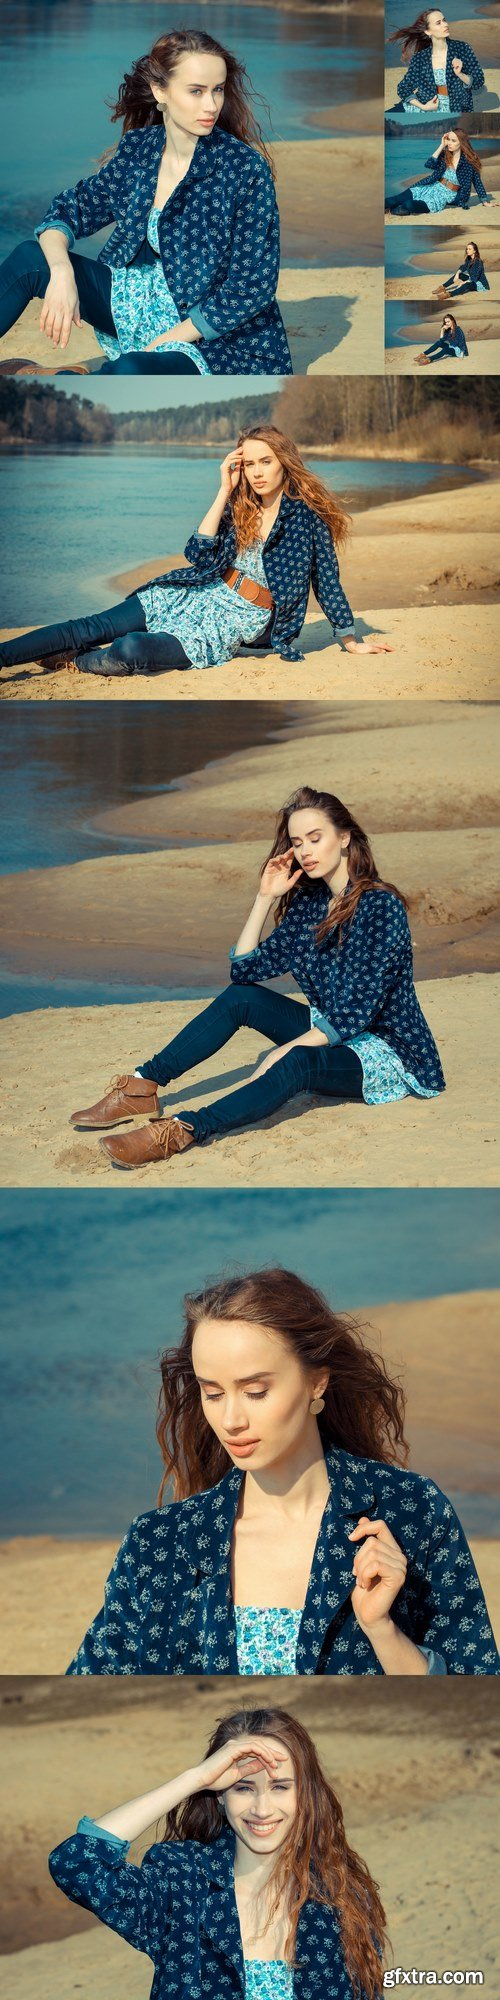 Dreamy lonely hipster girl on the sand